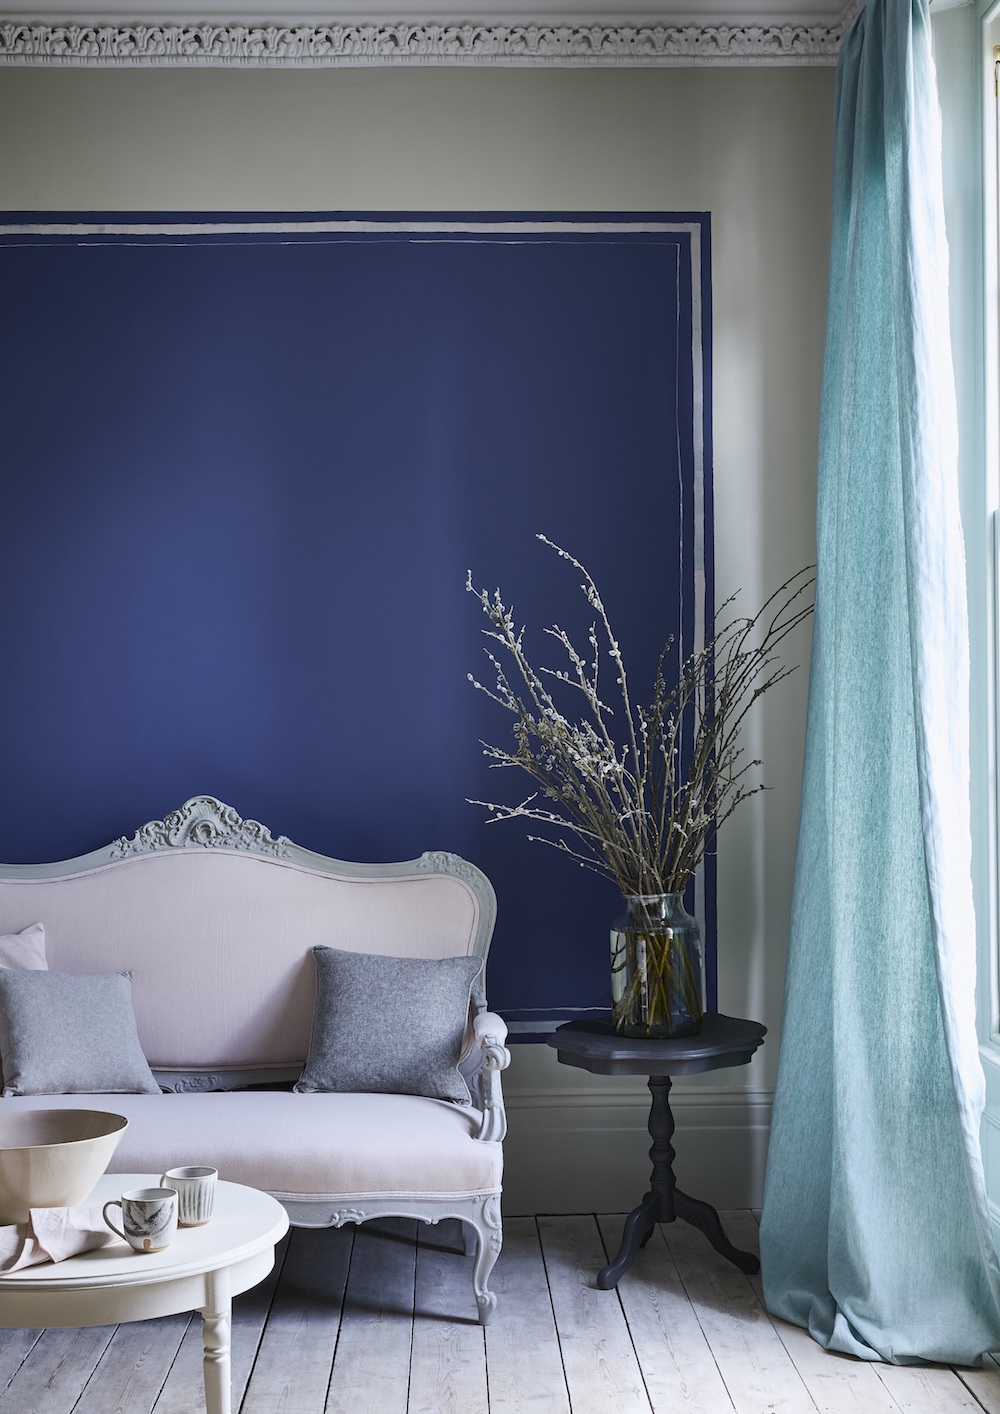 Annie Sloan - Living room - Wall Paint in Napoleonic Blue, Linen Union fabrics -  Lifestyle - Portrait (2).jpg